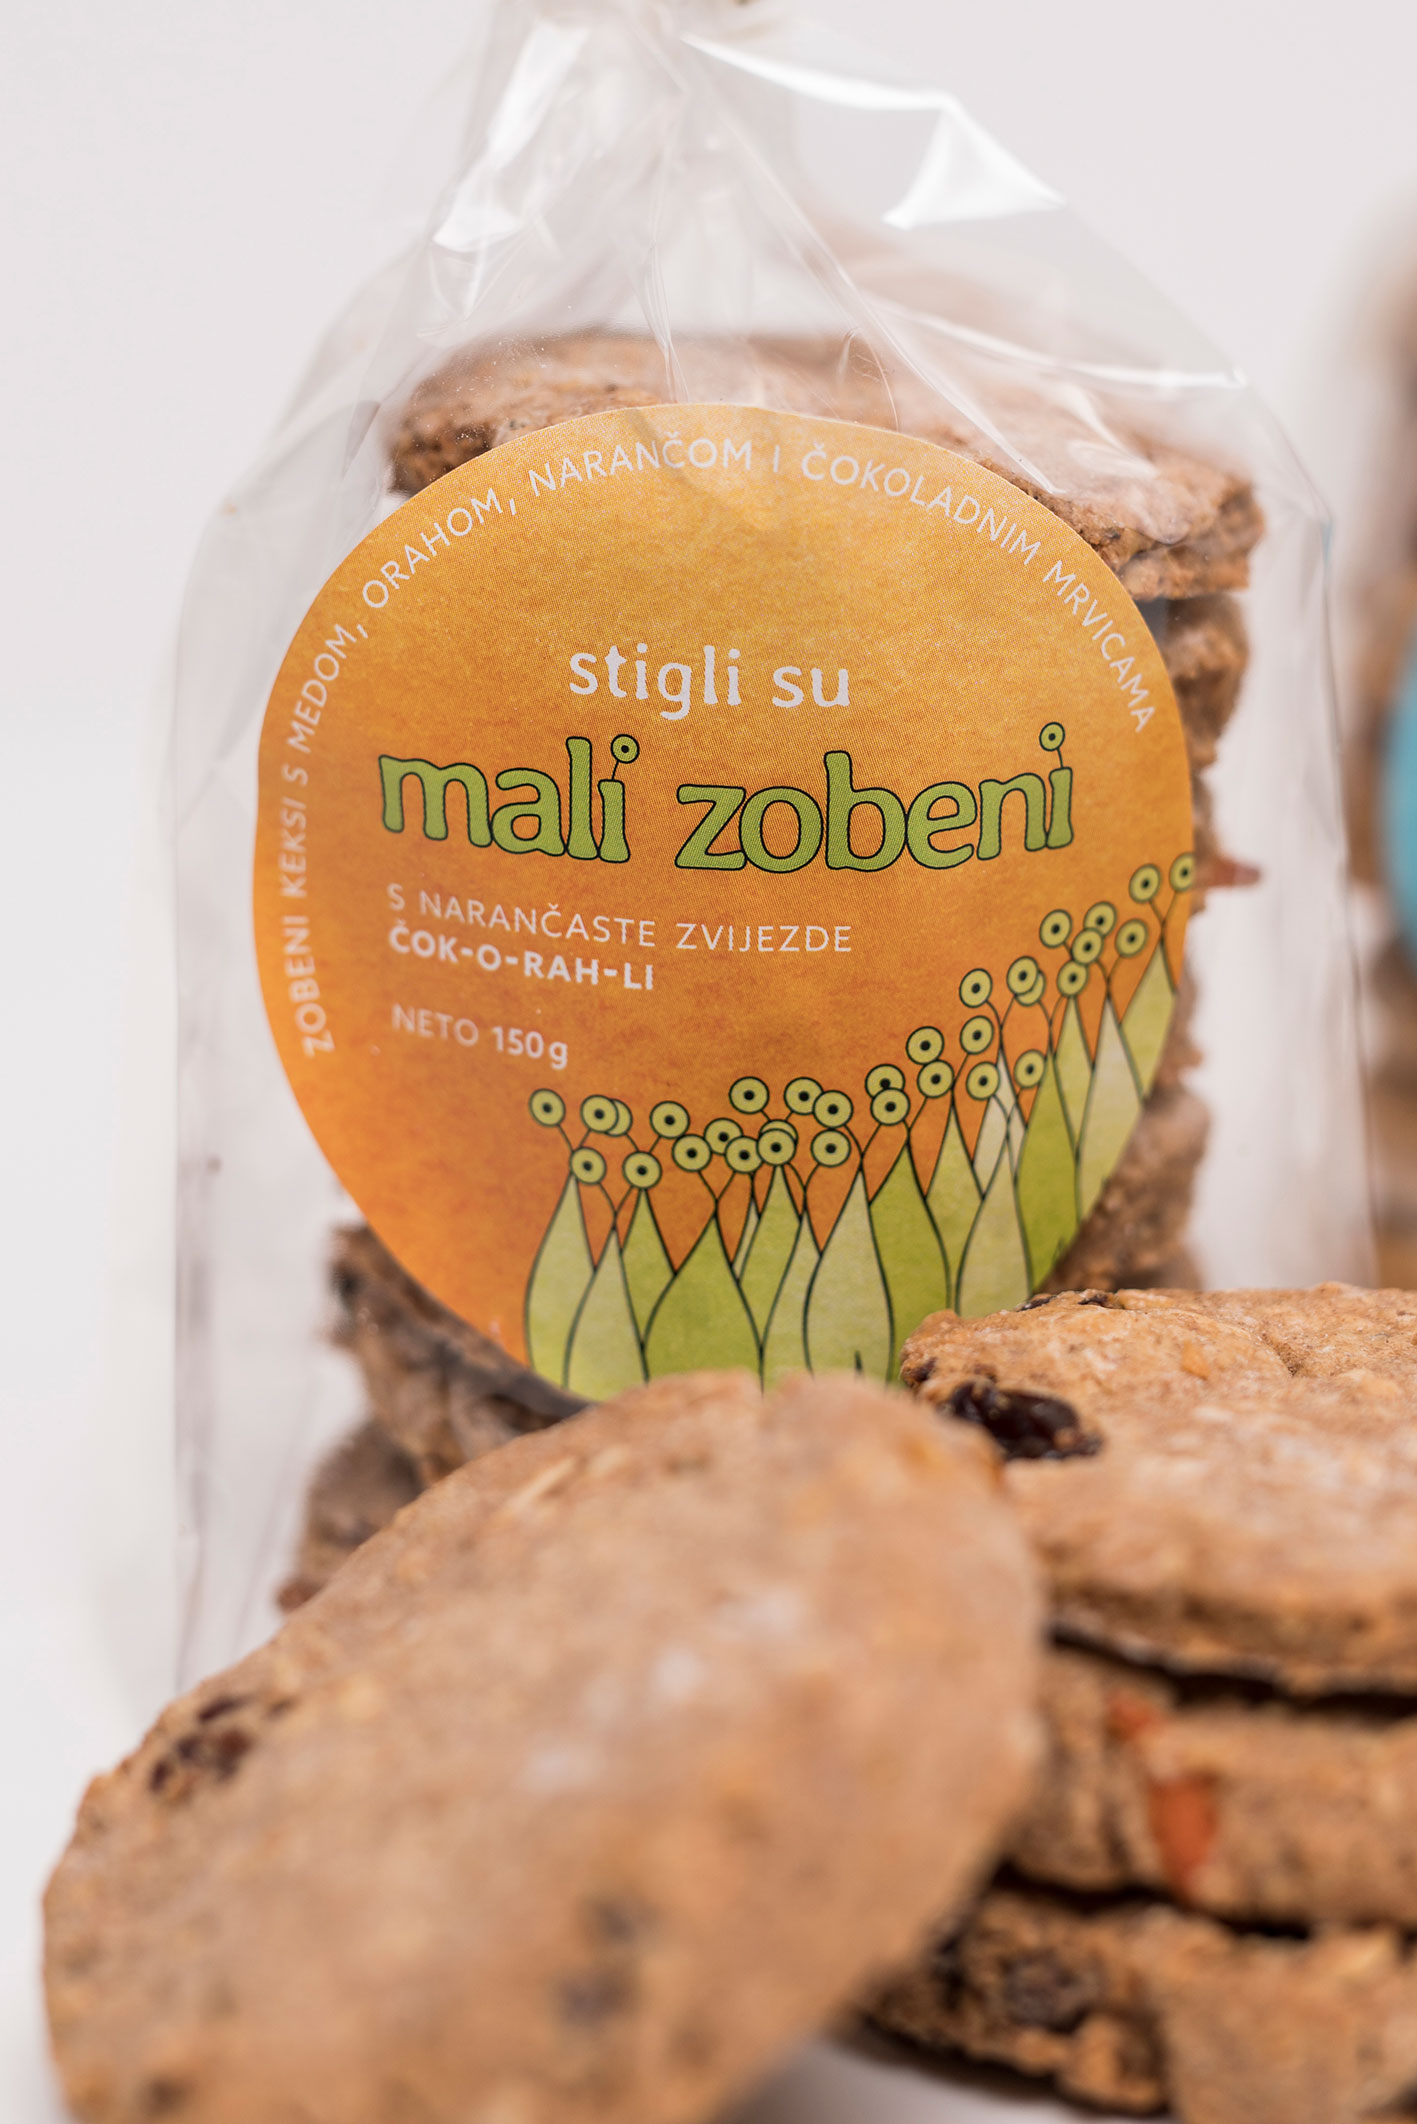 masavukmanovic.com - mali zobeni packaging 02